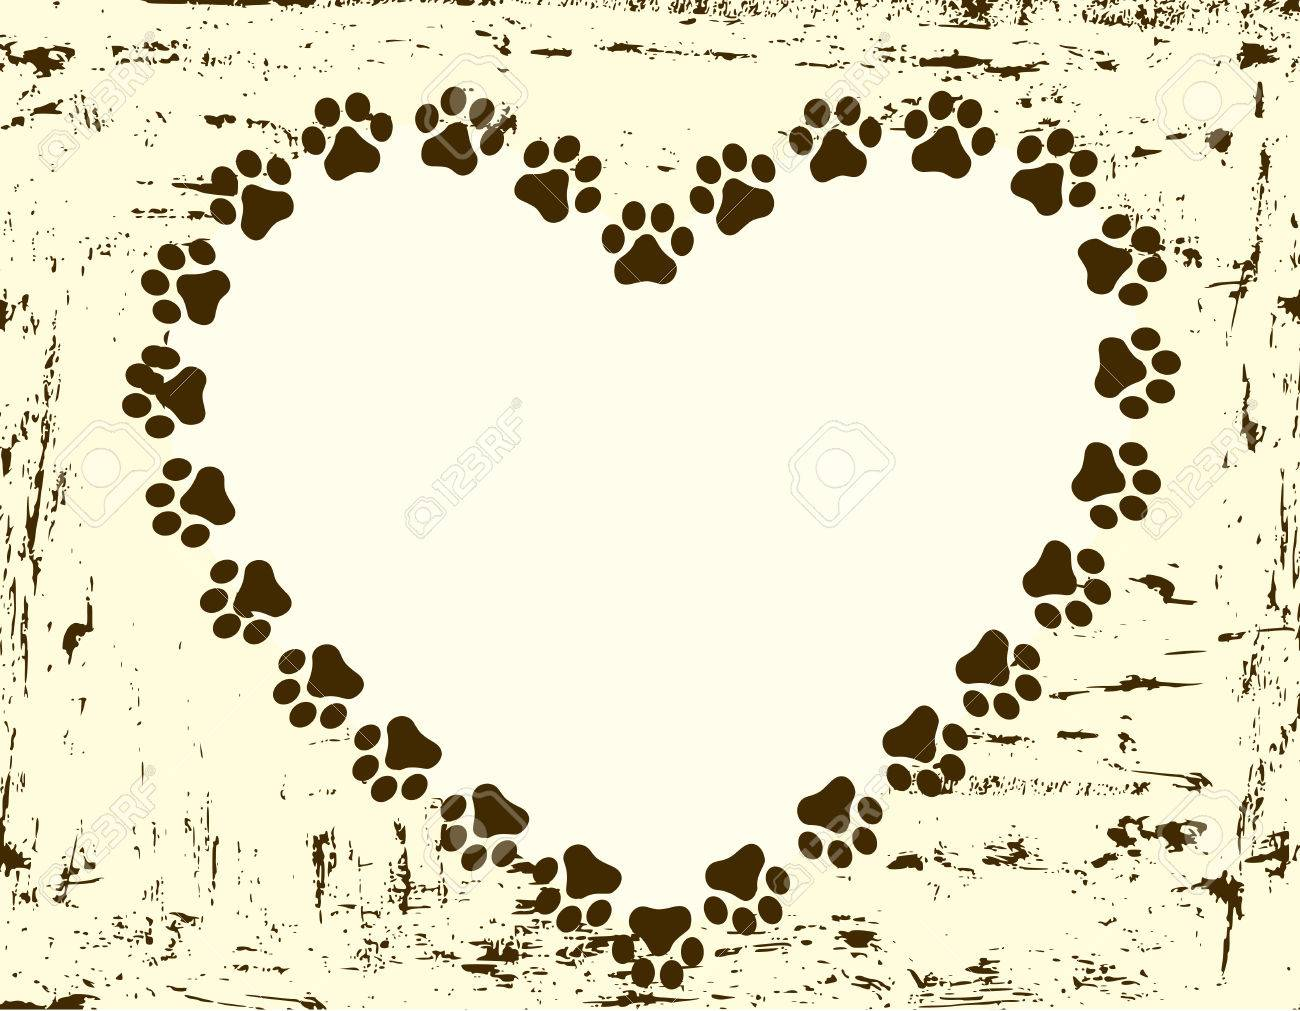 Heart Shaped Paw Print Border / Frame Royalty Free Cliparts, Vectors ...